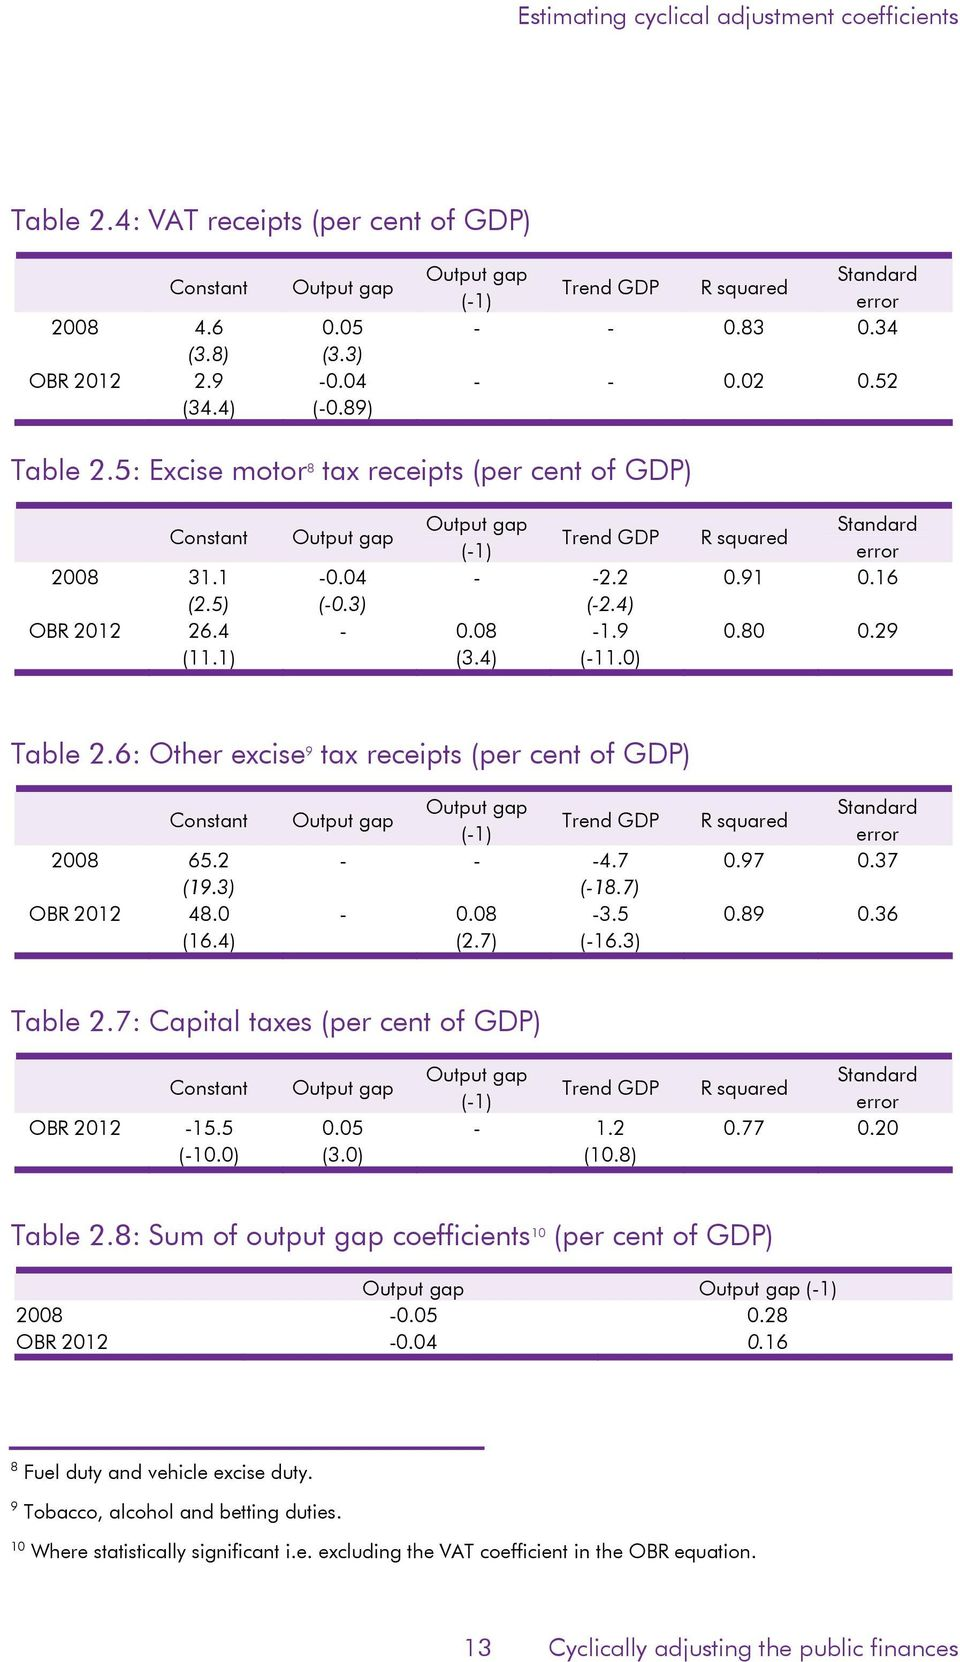 4) OBR 2012 26.4-0.08-1.9 0.80 0.29 (11.1) (3.4) (-11.0) Table 2.6: Oher excise 9 ax receips (per cen of GDP) Consan Oupu gap Oupu gap Sandard Trend GDP R squared (-1) error 2008 65.2 - - -4.7 0.97 0.